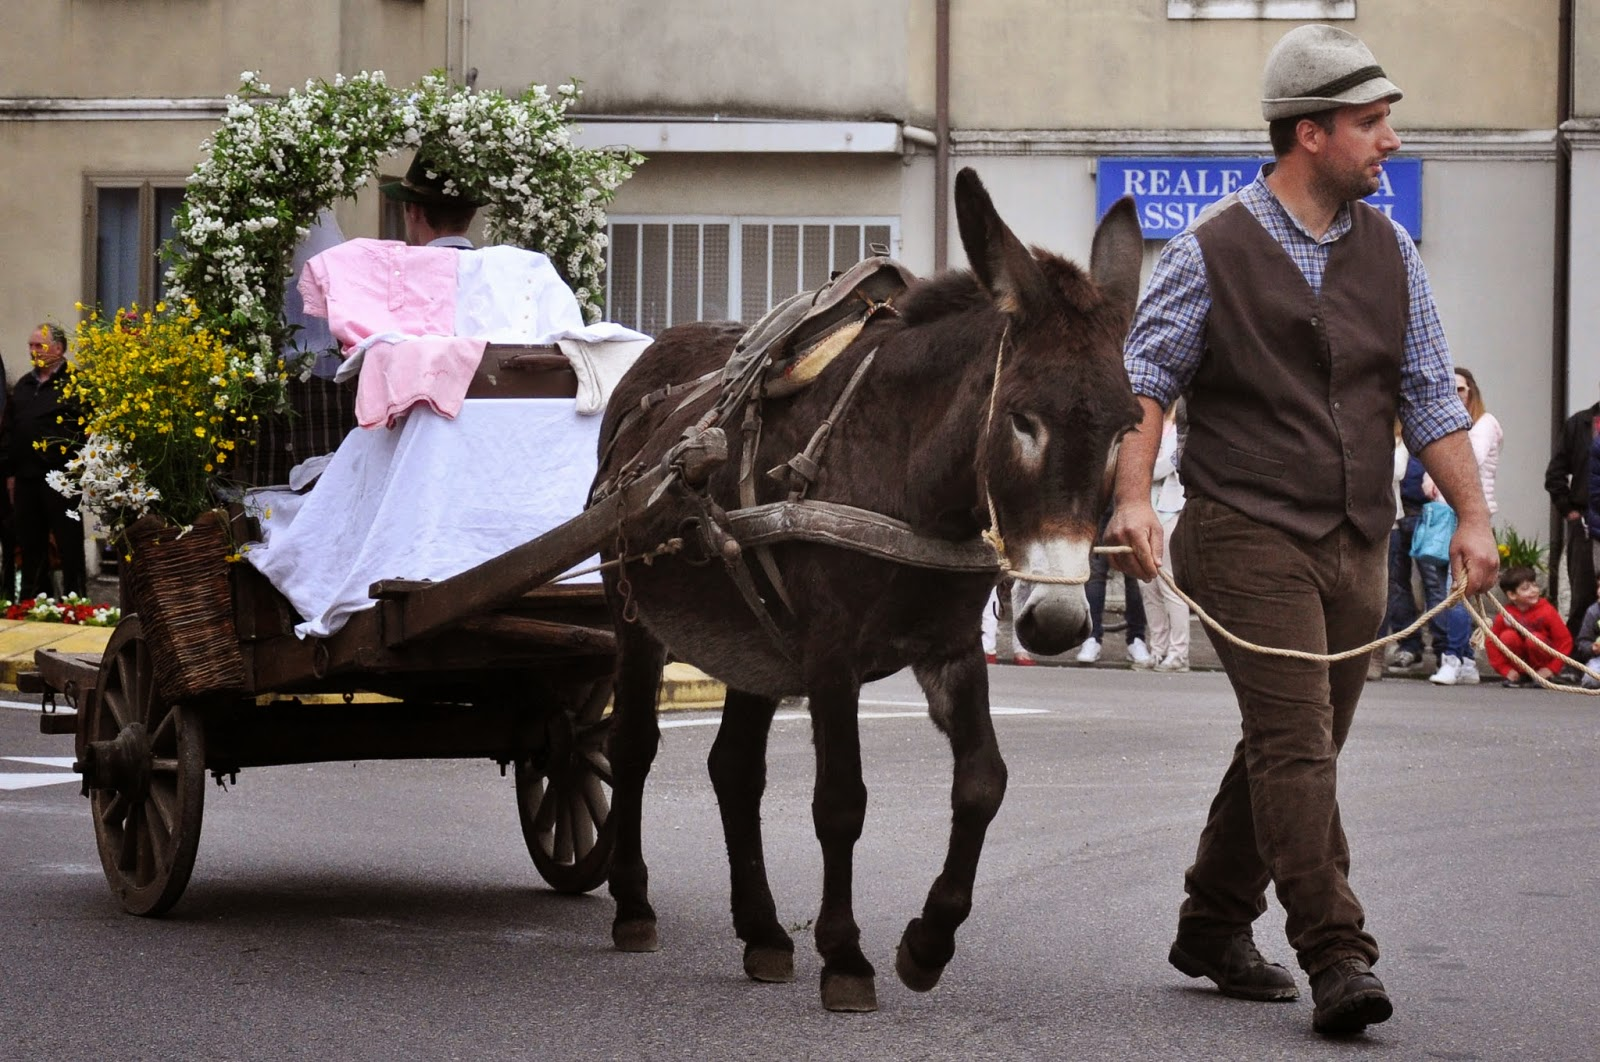 The wedding cart at the Parade, Donkey Race, Romano d'Ezzelino, Veneto, Italy